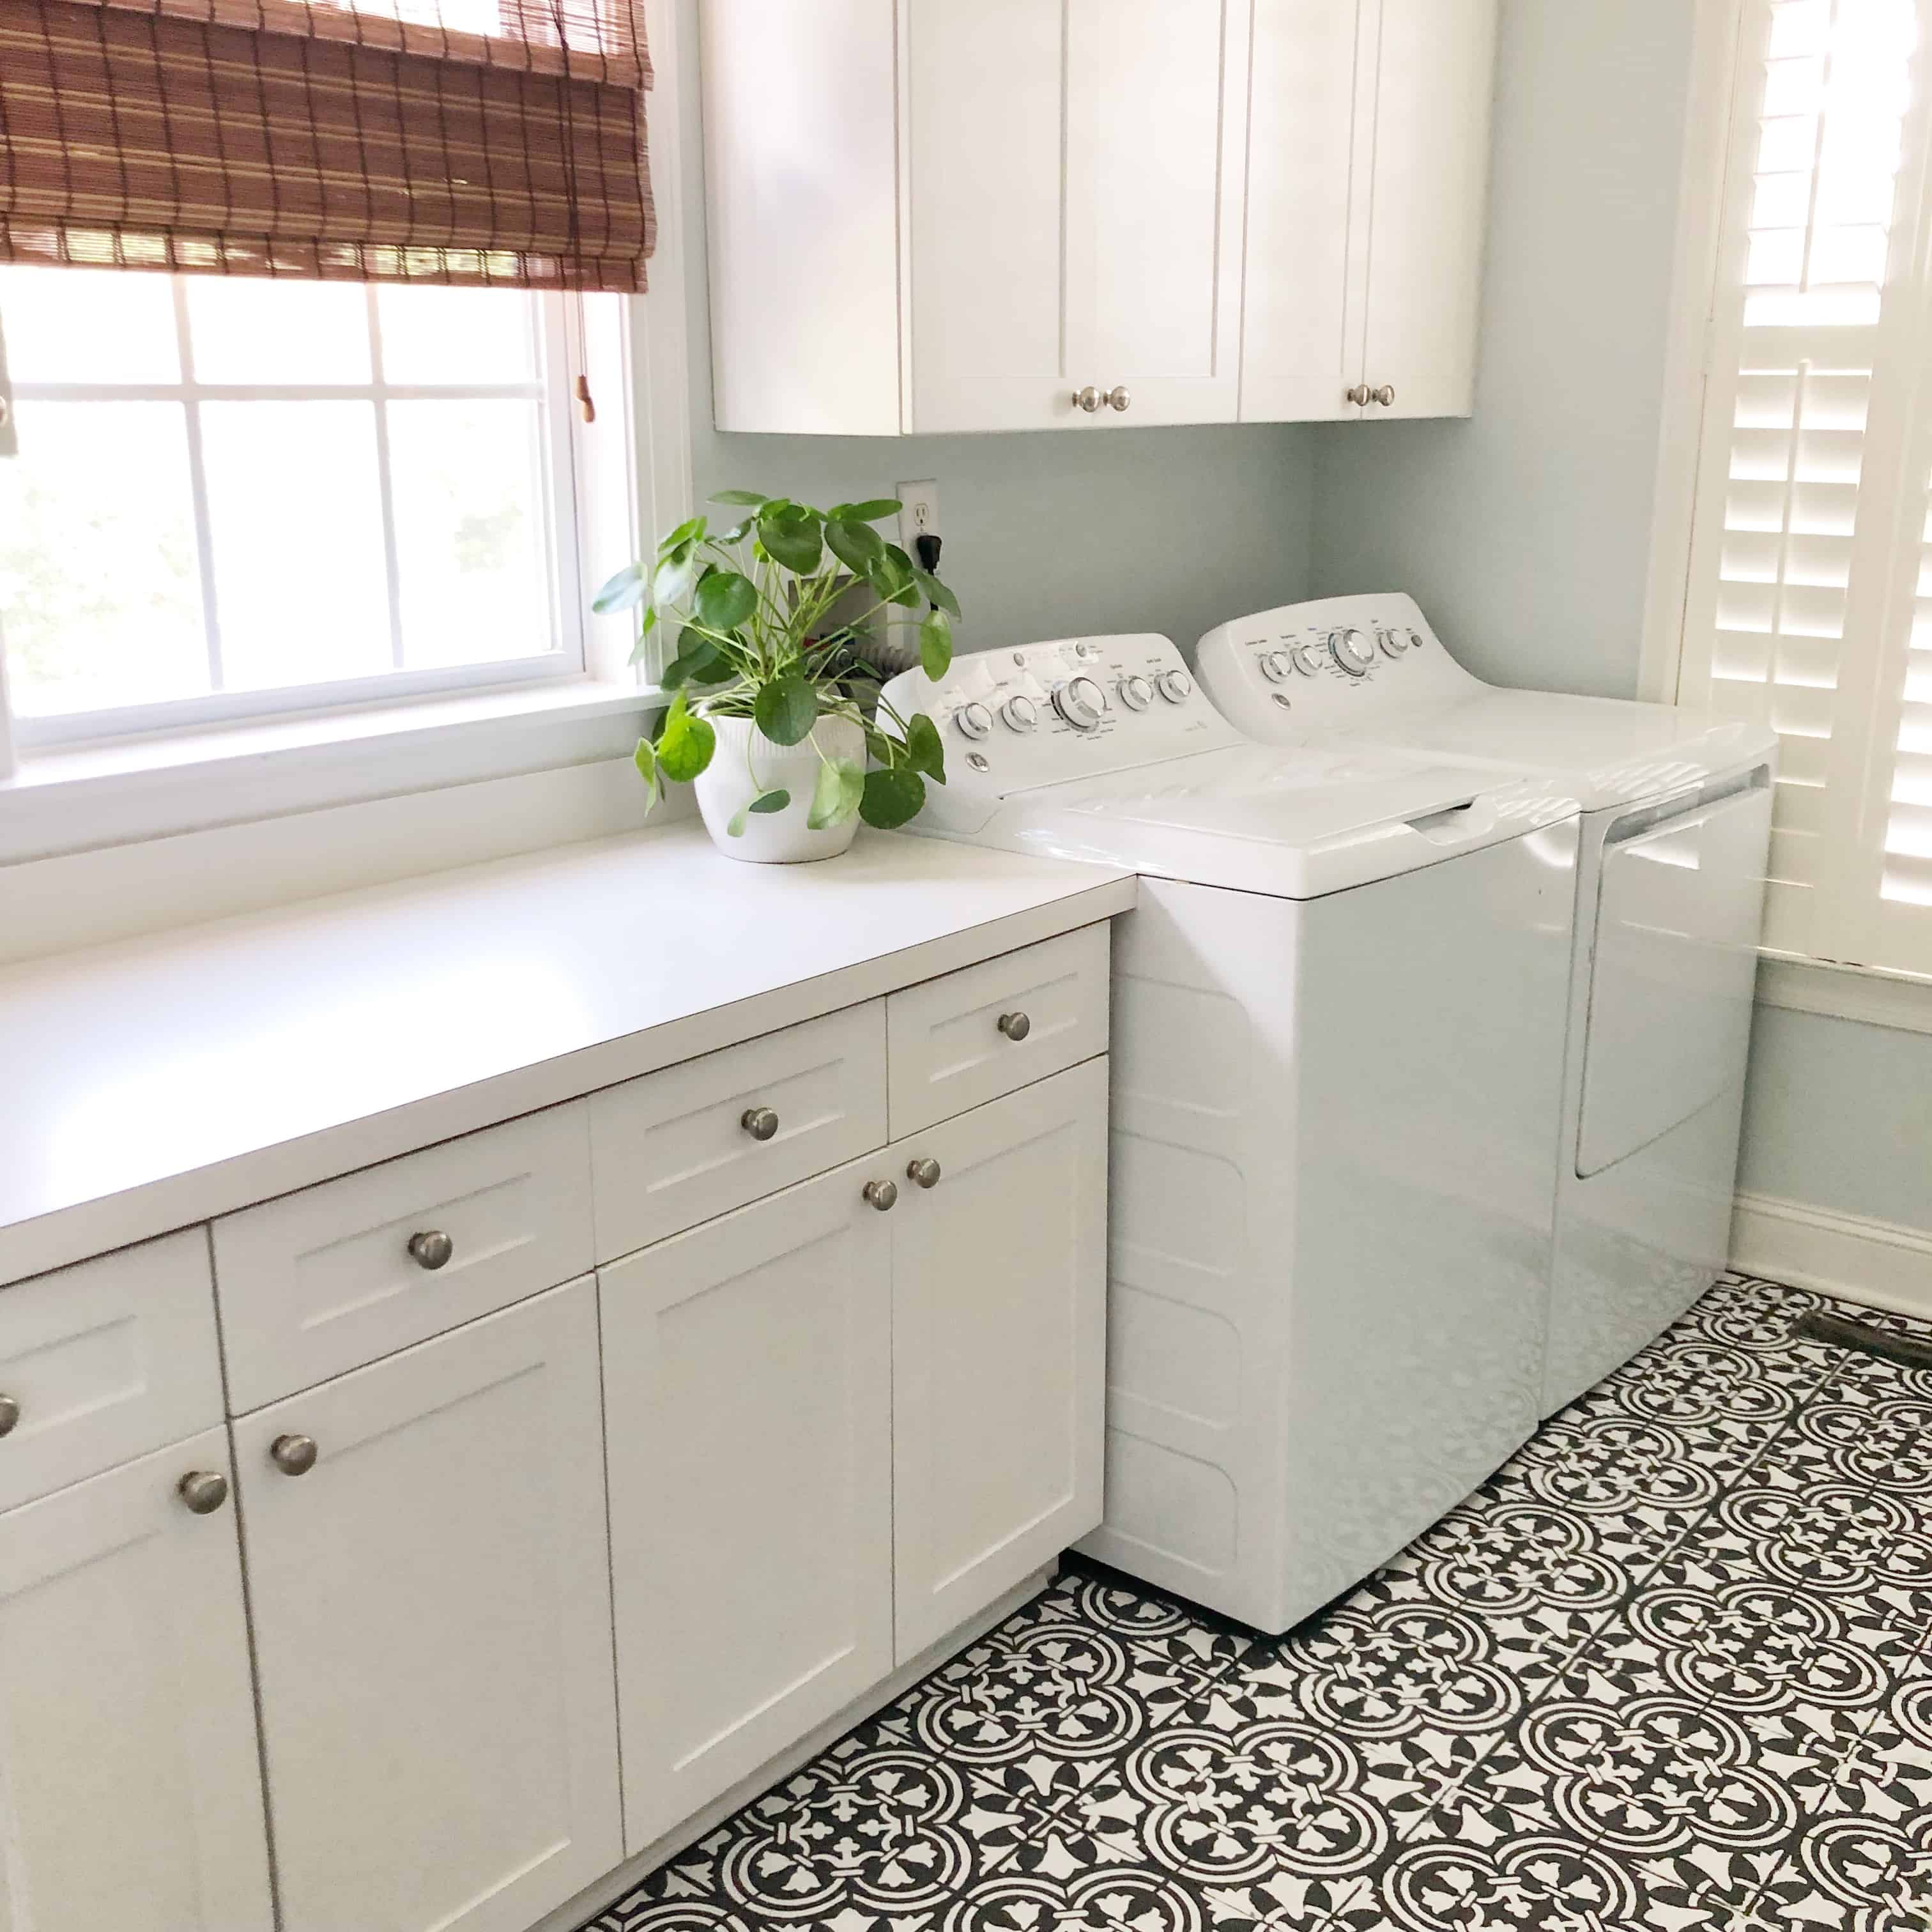 How to seal your new butcher block countertop with a natural finish. #laundryroom #butcherblock #butcherblockcountertop #countertop #diycounters #coastalhome #coastallaundryroom #vintageruglaundryroom #vintagerug #paintedtile #paintedfloors